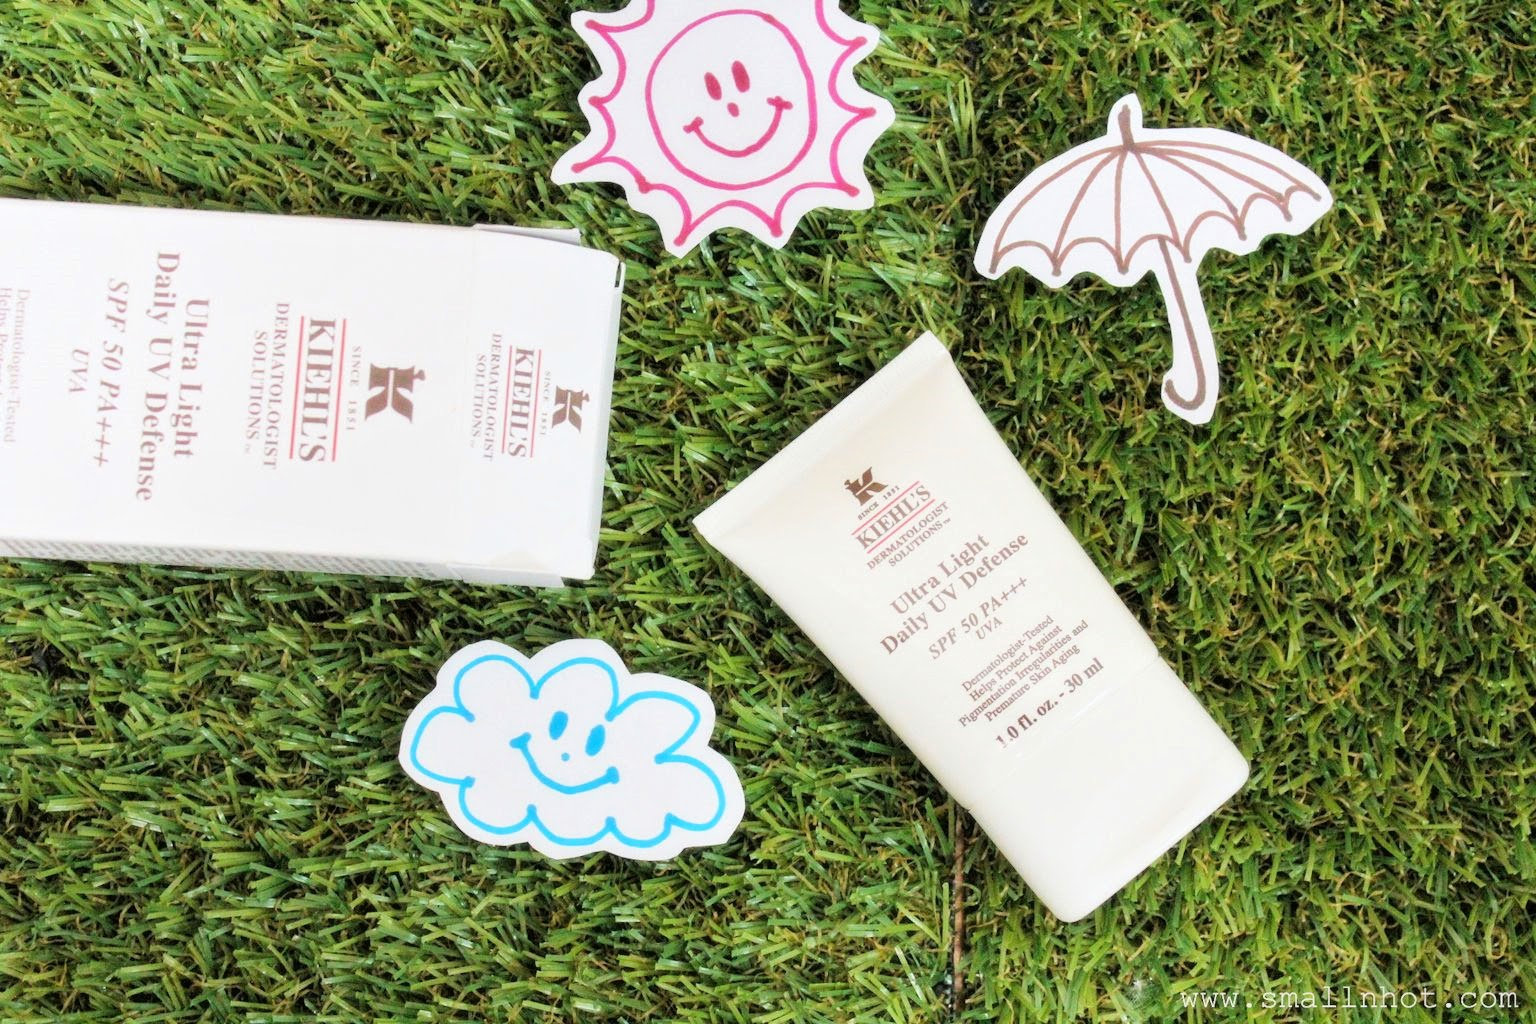 [review] Kiehl's Ultra-Light Daily UV Defense SPF 50 PA+++ UVA